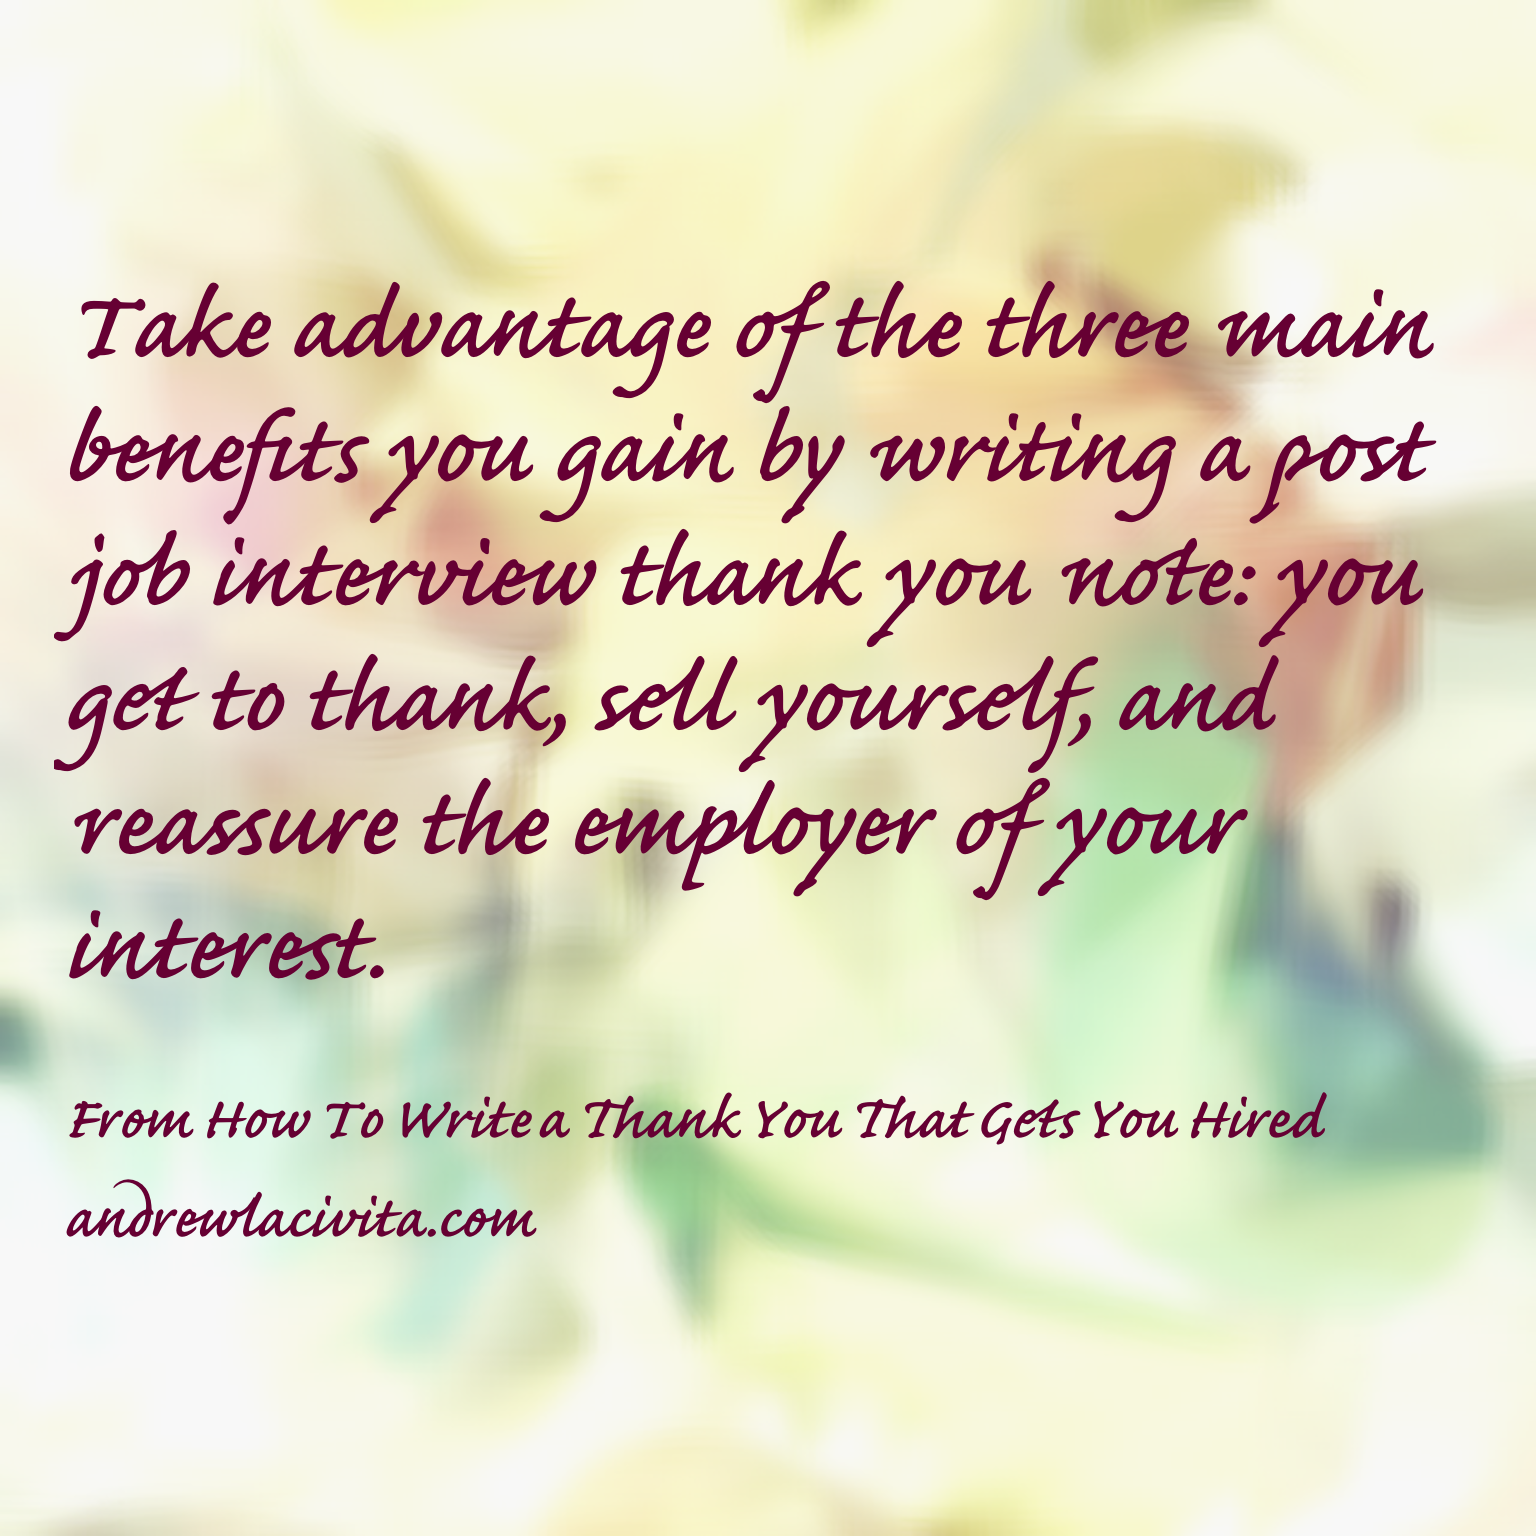 how to write a thank you that gets you hired 7 11 16 2